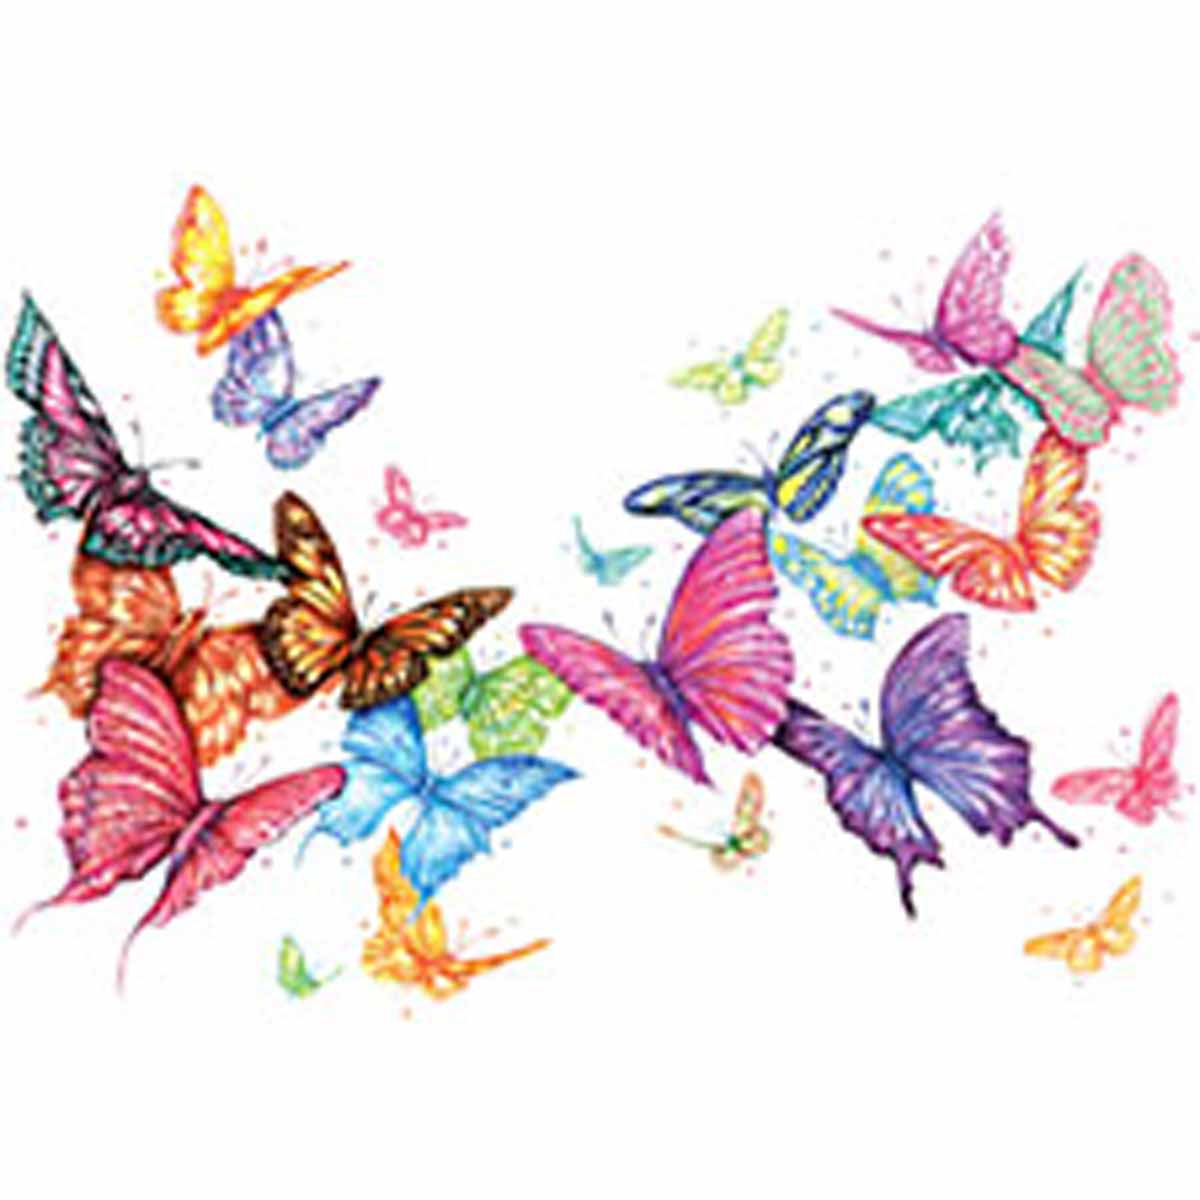 T-shirt femme manches courtes - Papillons nuage - Butterfly - 5140